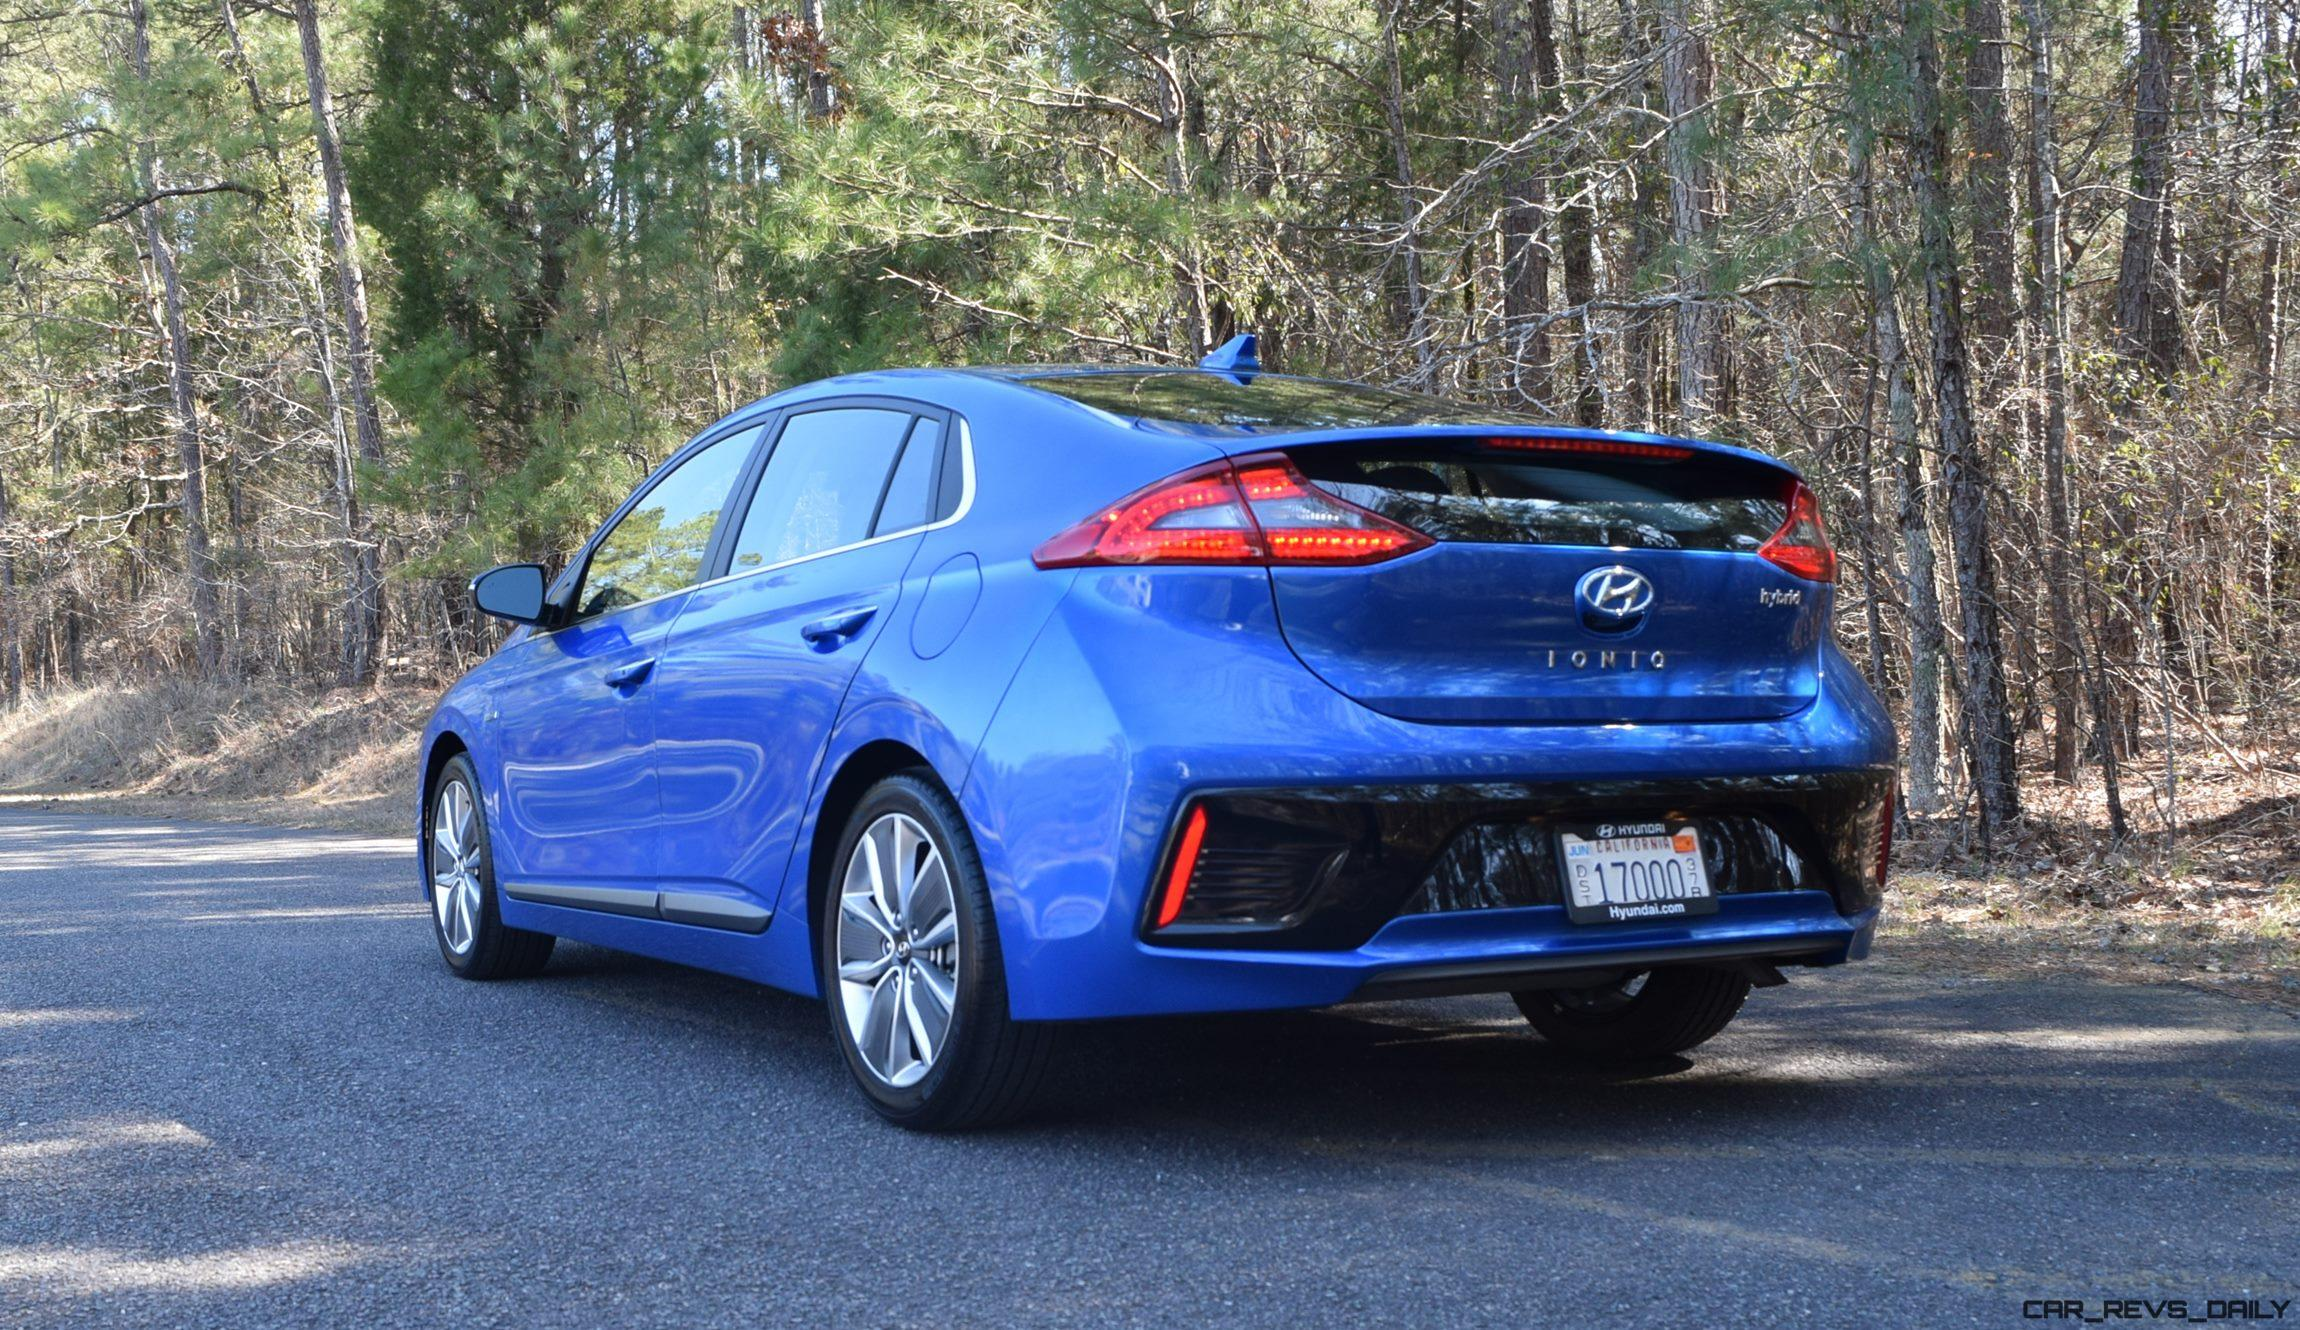 2017 hyundai ioniq hybrid first drive review w video 60 photos. Black Bedroom Furniture Sets. Home Design Ideas